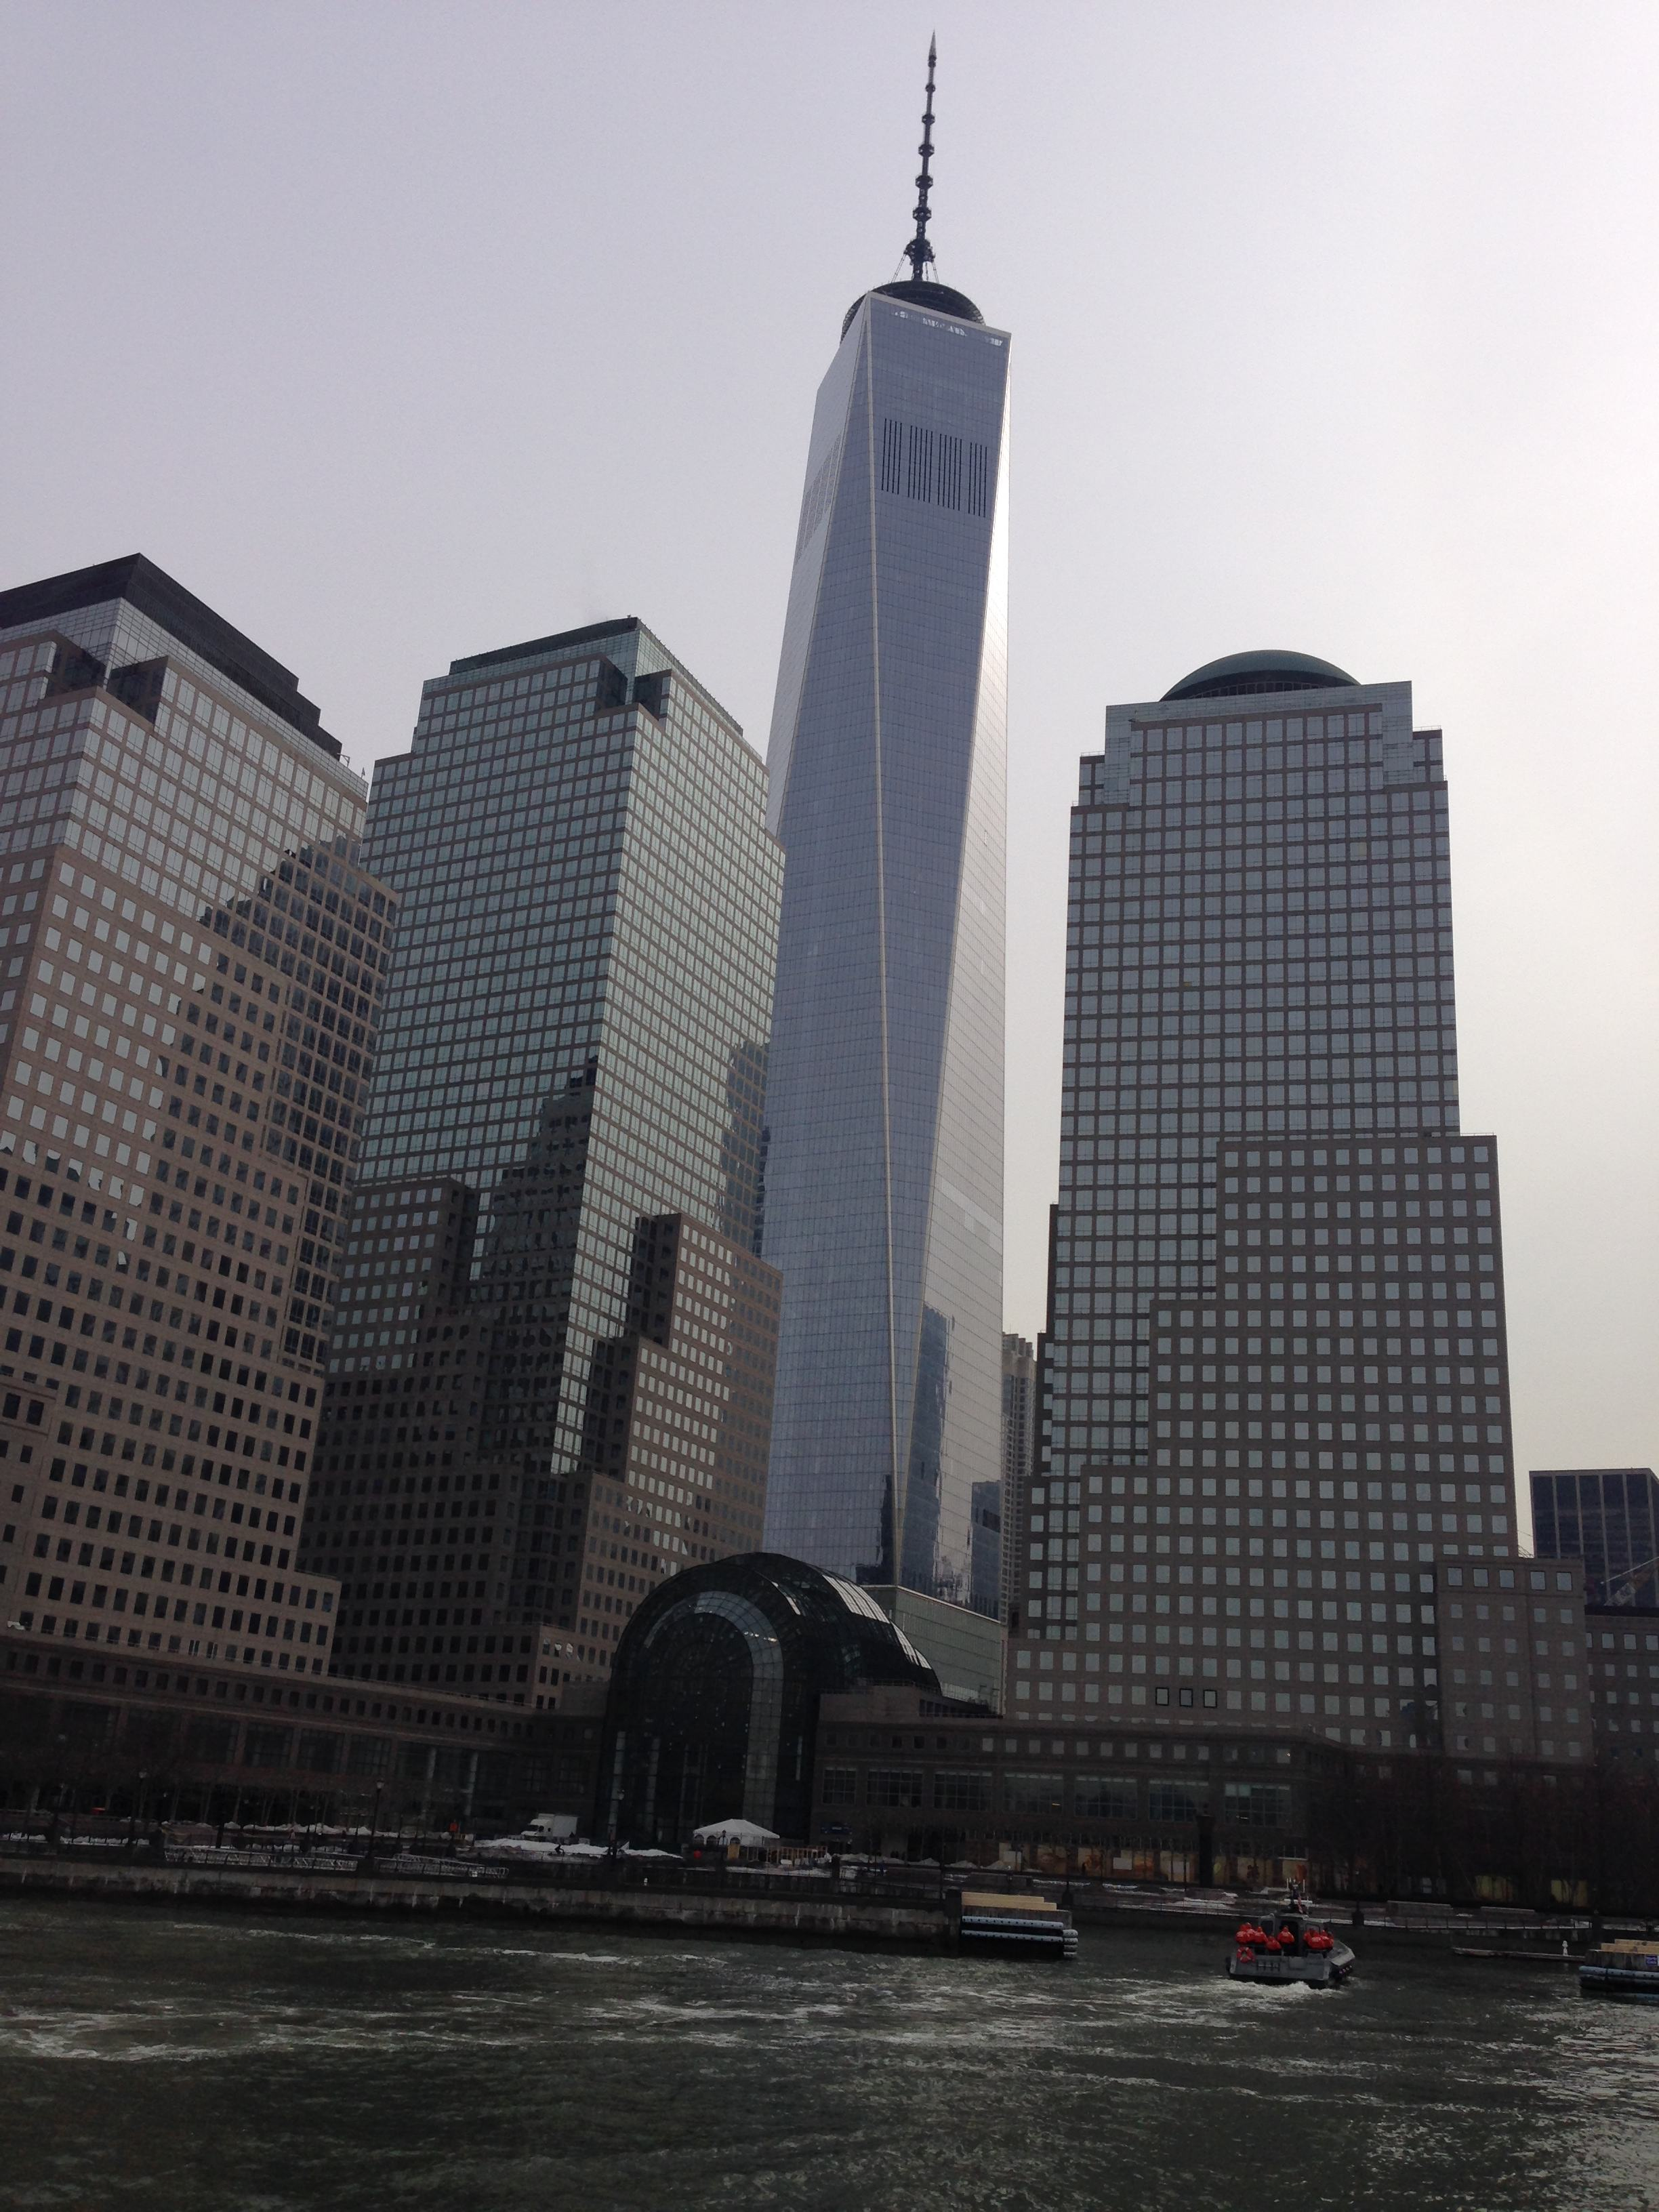 Glass exterior of the Freedom Tower is finally finished!